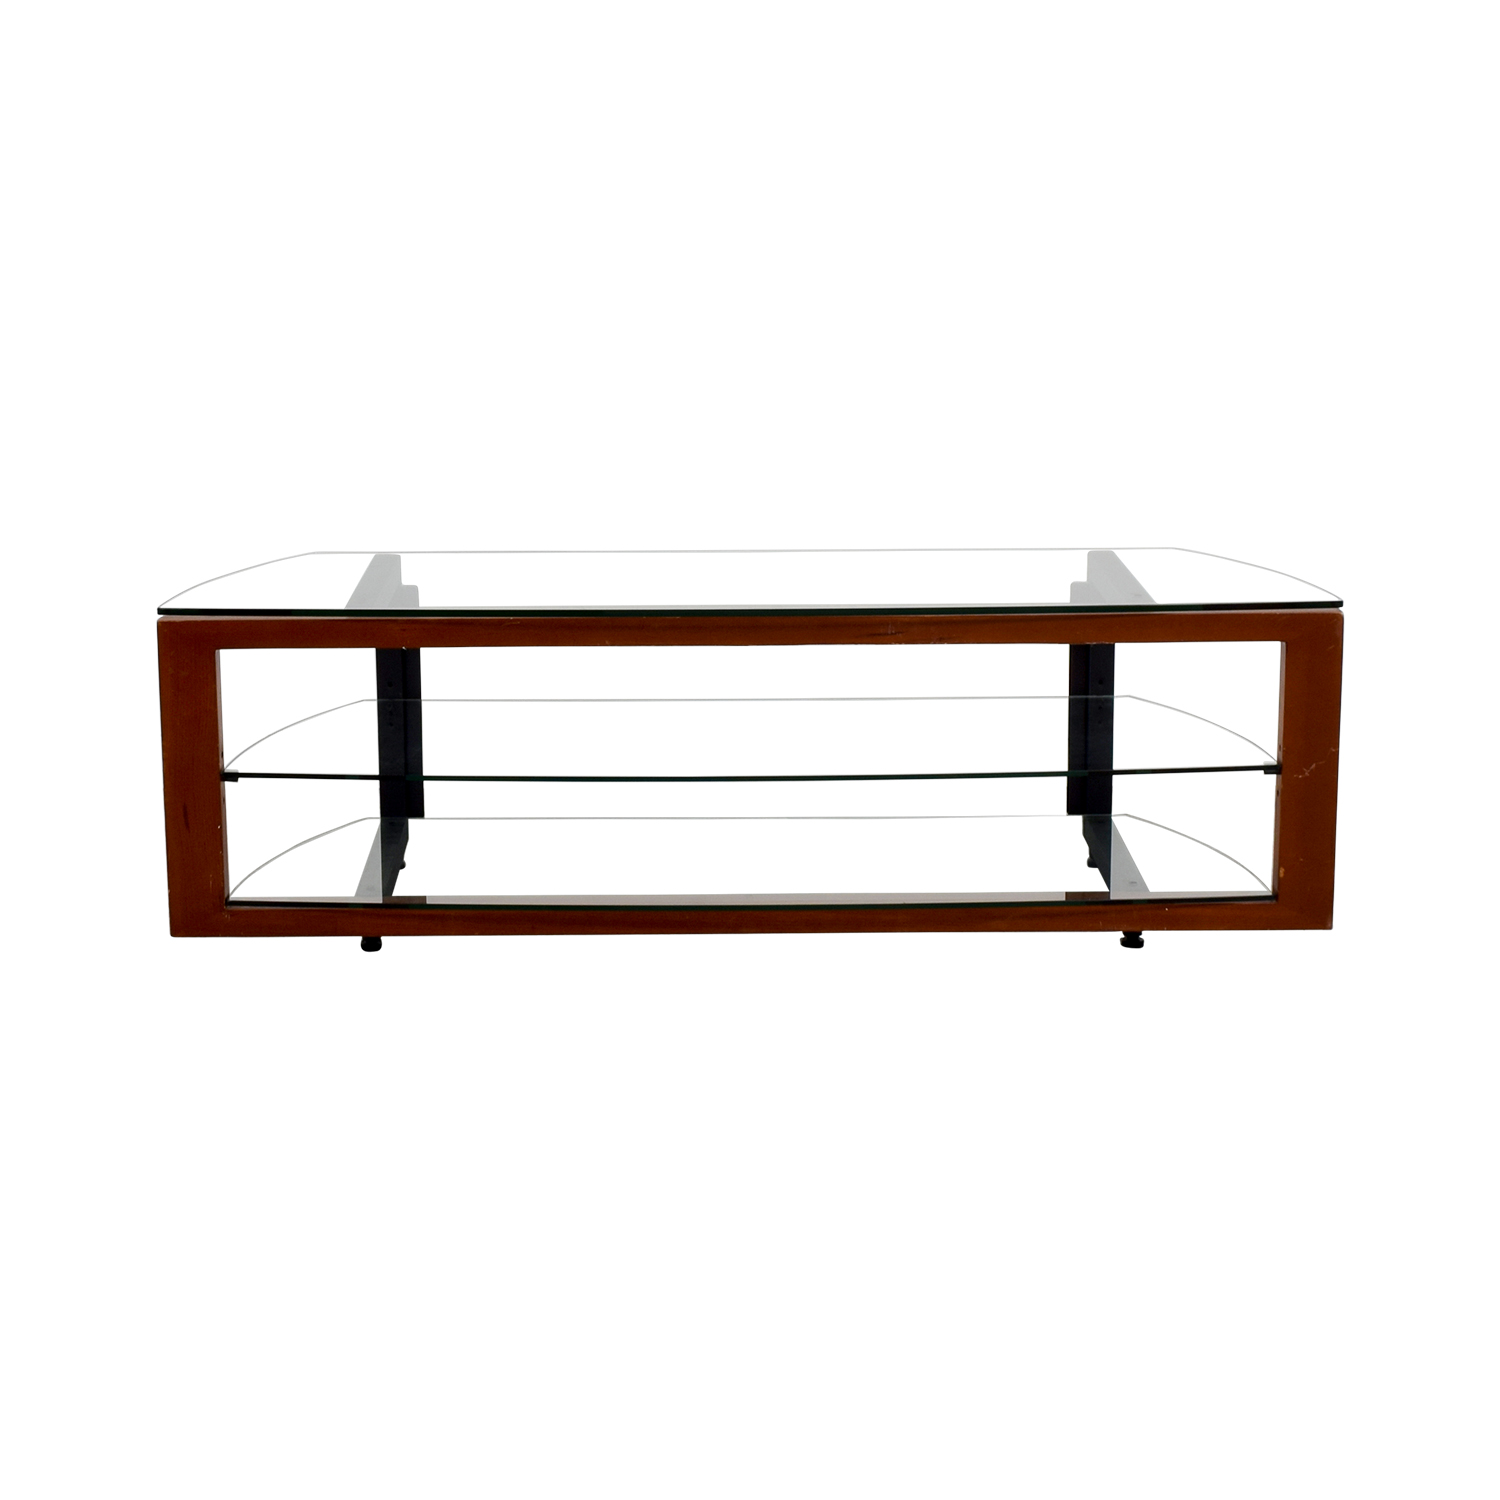 54 Off Glass Wood And Metal Tv Stand Storage